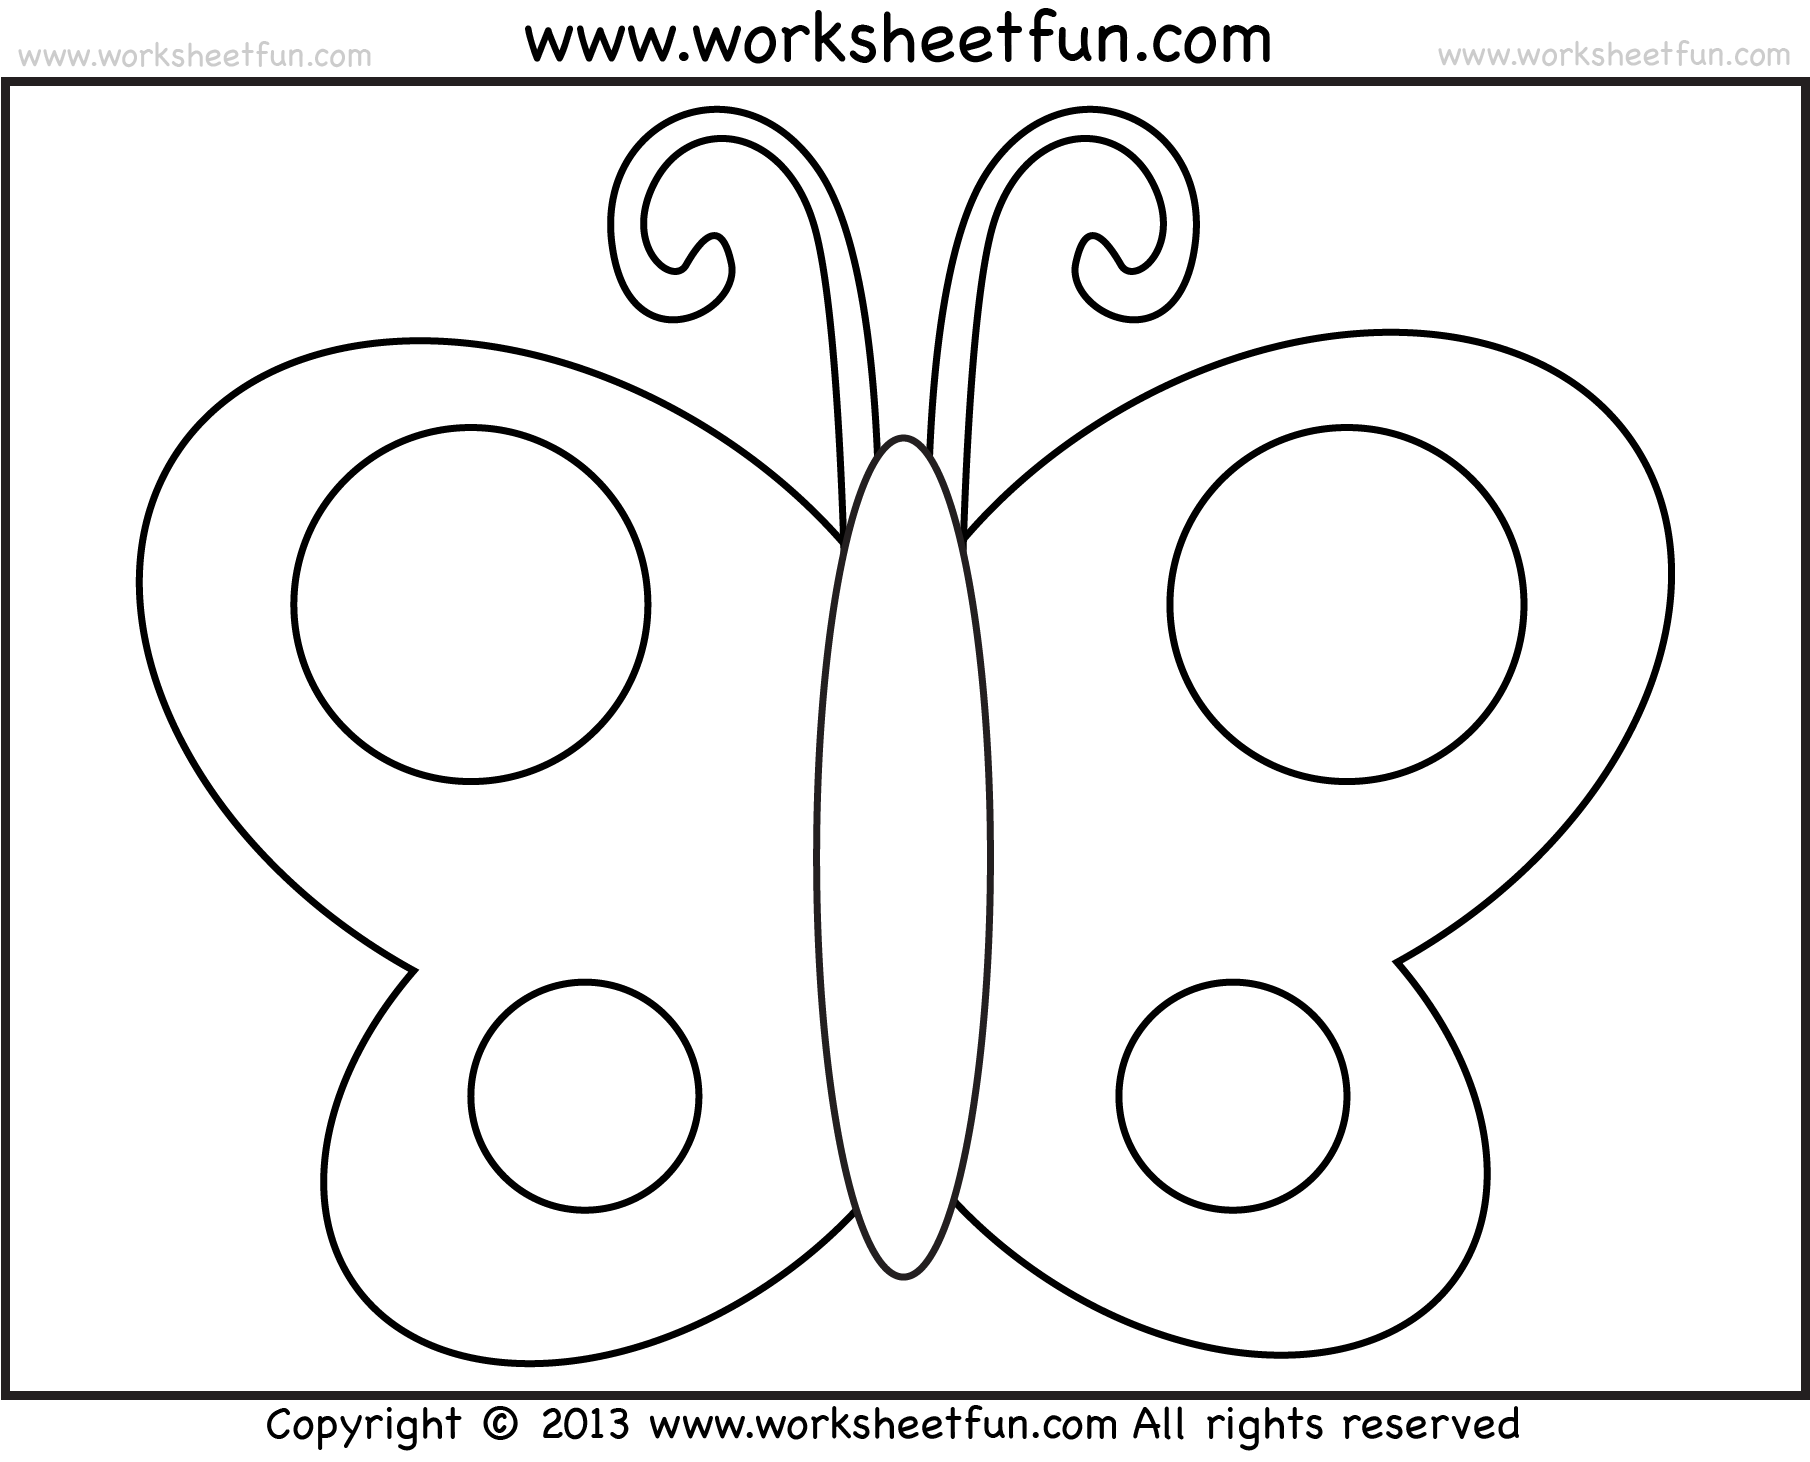 Worksheet Drawing At Getdrawingscom  Free For Personal Use  X Butterfly Tracing And Coloring  Preschool Worksheets Free